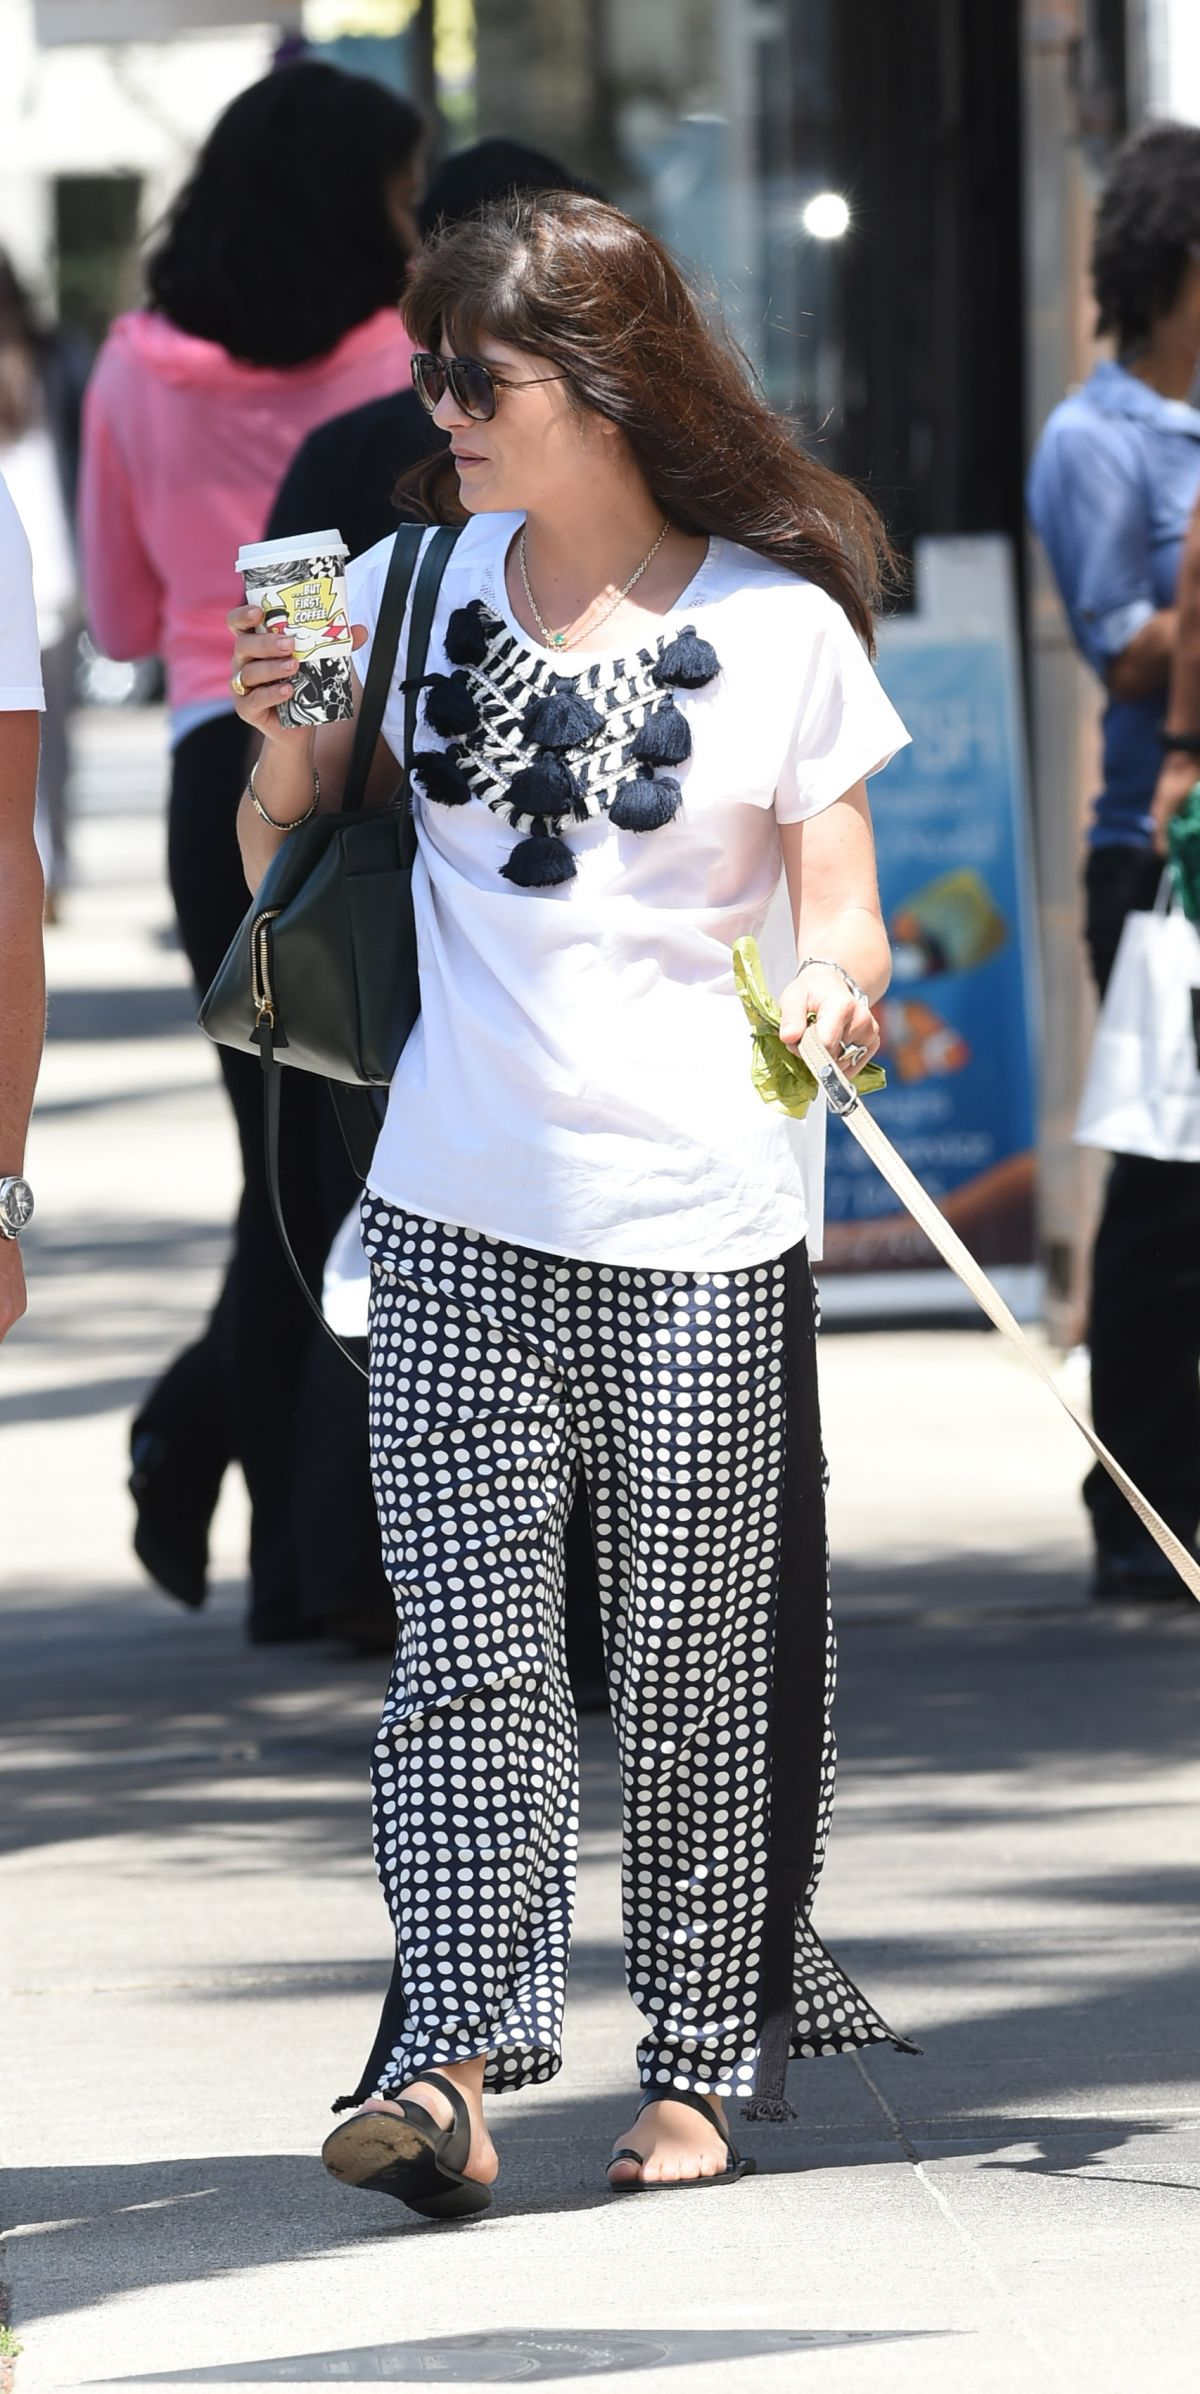 Selma Blair Out with her dog in LA   selma-blair-out-with-her-dog-in-la-_12